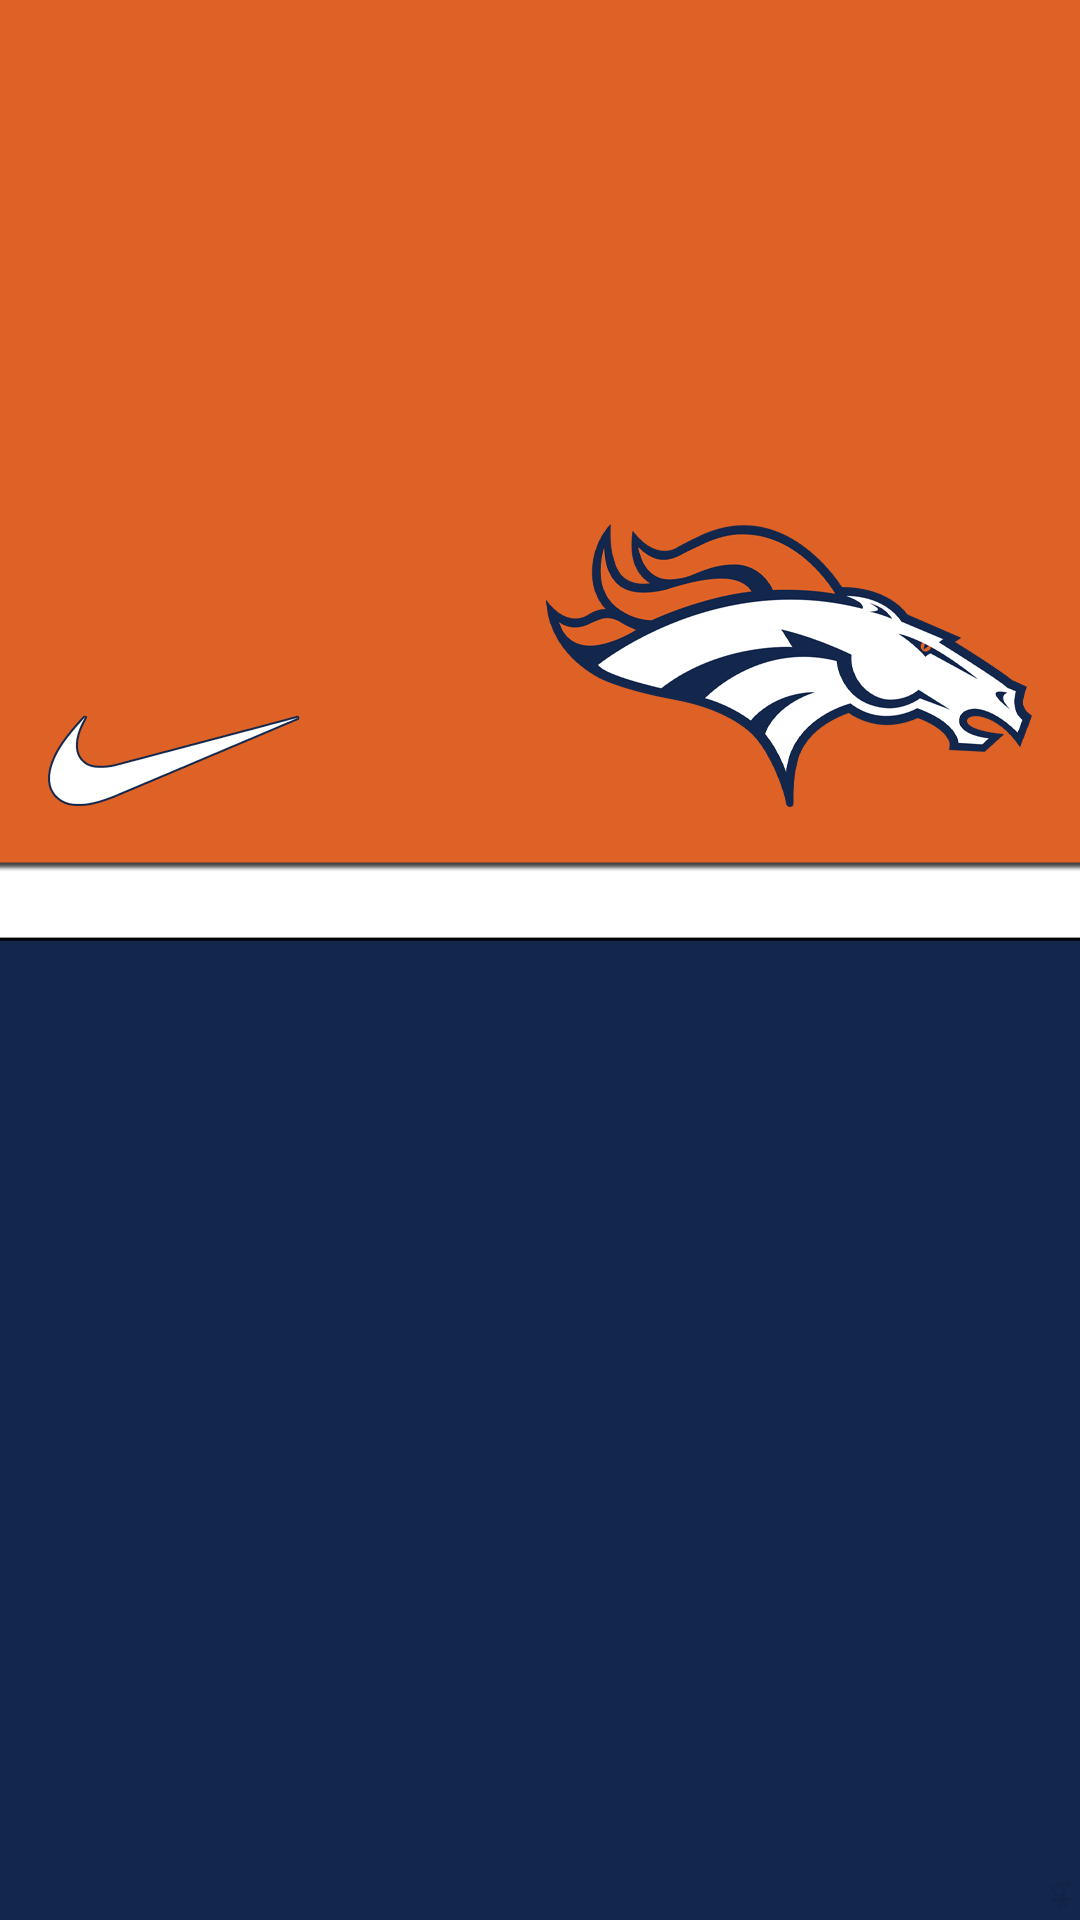 Nfl Sick Football Phone Wallpaper In 2020 Denver Broncos Wallpaper Broncos Wallpaper Denver Broncos